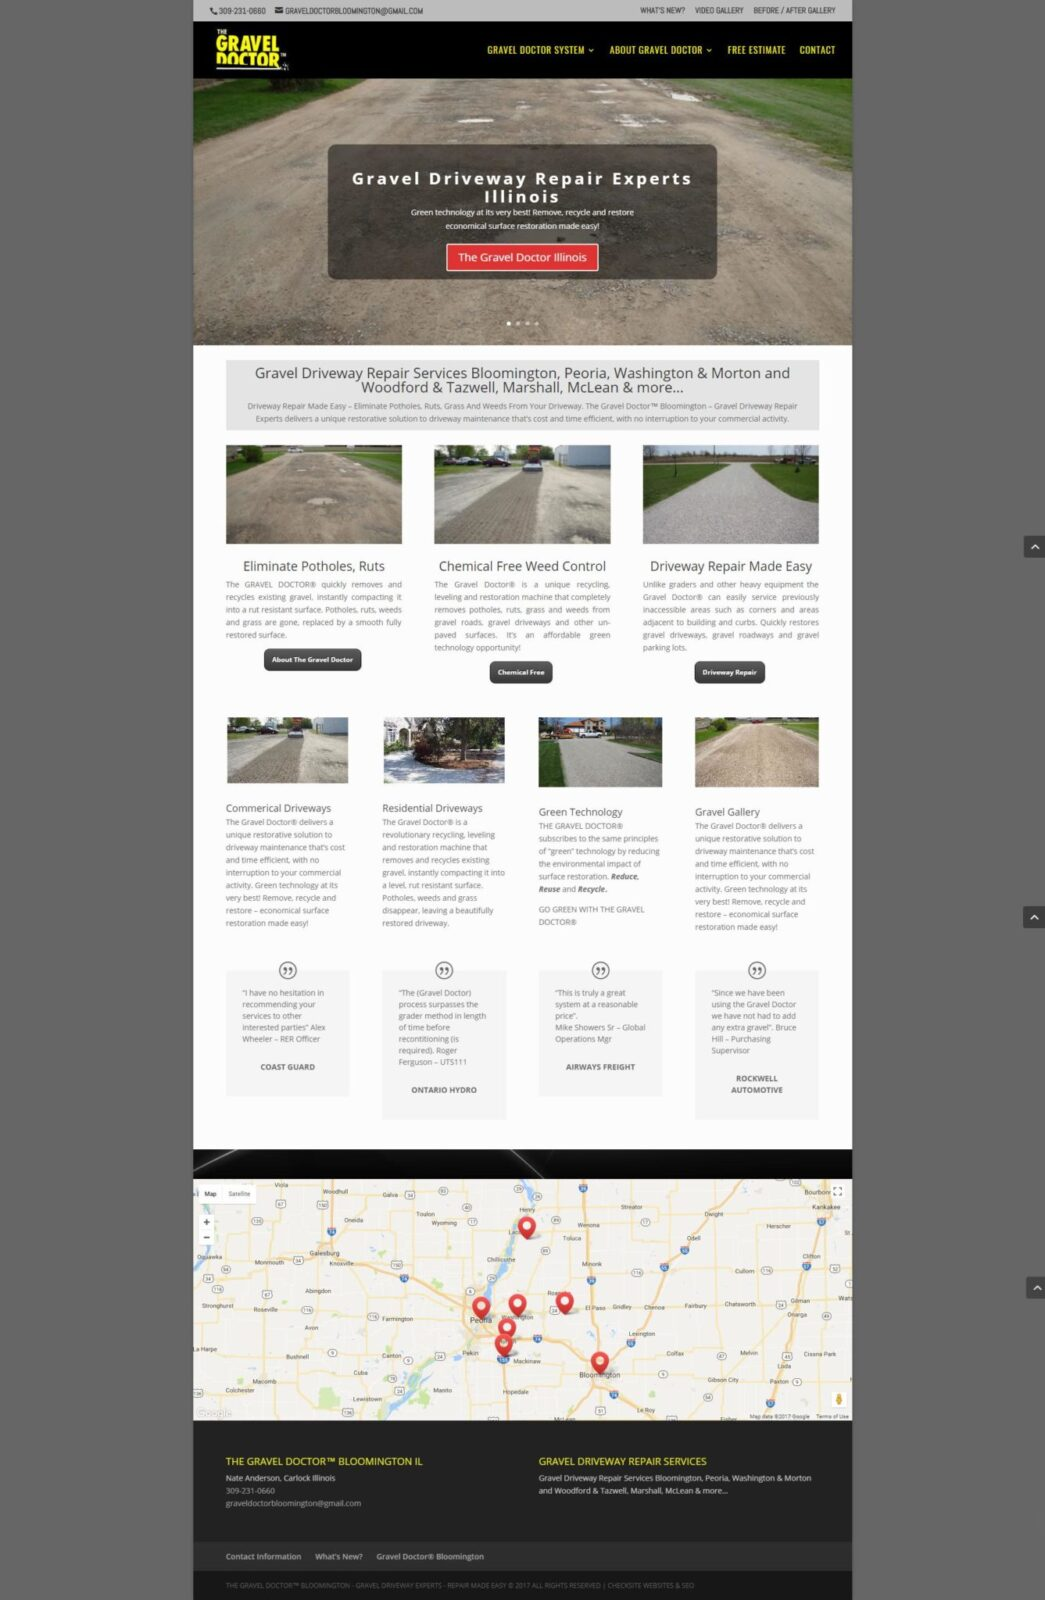 Gravel Driveway Repair Services Bloomington, Peoria, Washington & Morton and Woodford & Tazwell, Marshall, McLean & more…